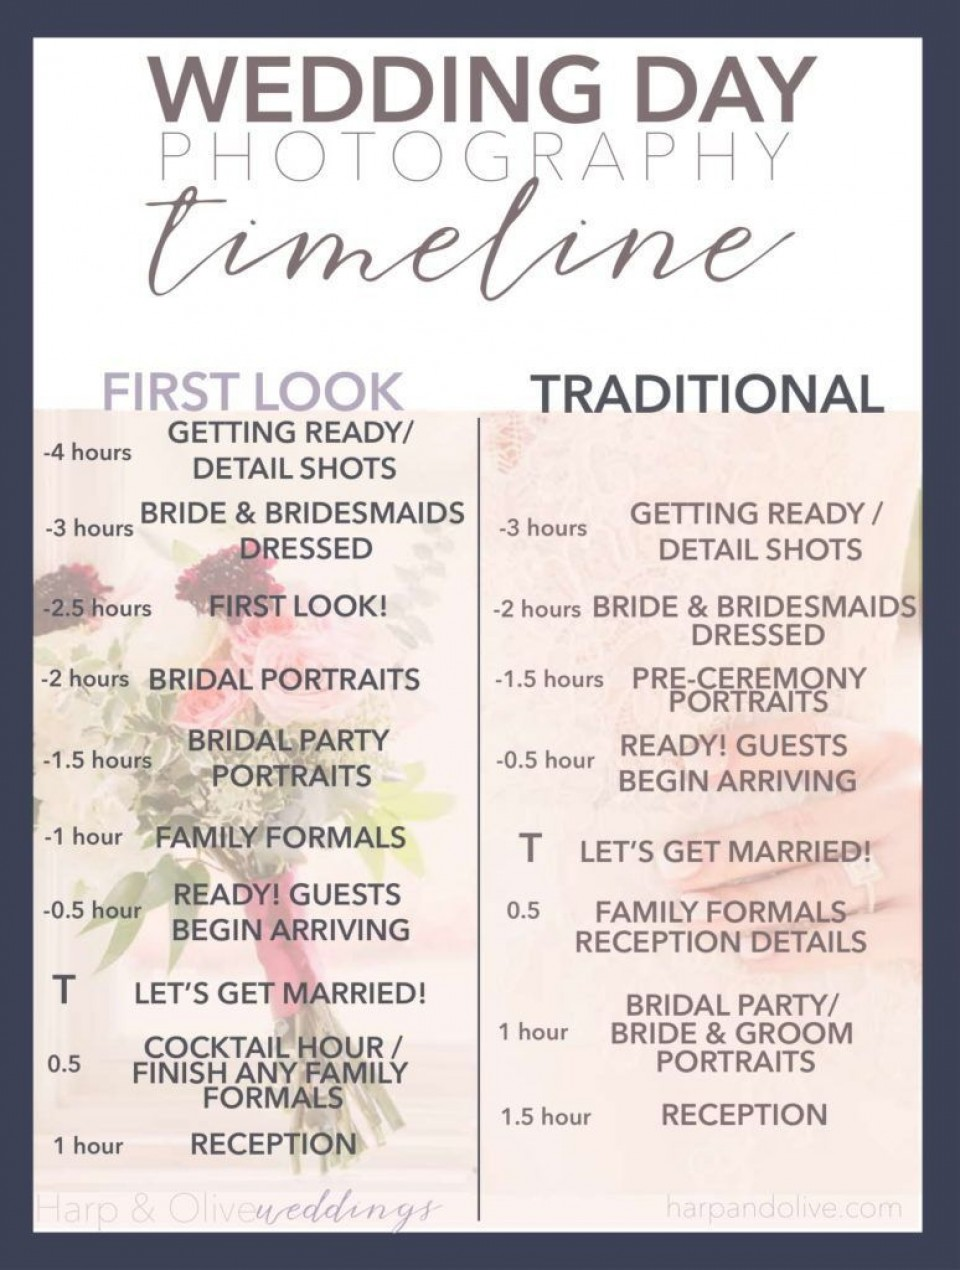 004 Impressive Wedding Timeline For Guest Template Free Example  Download960